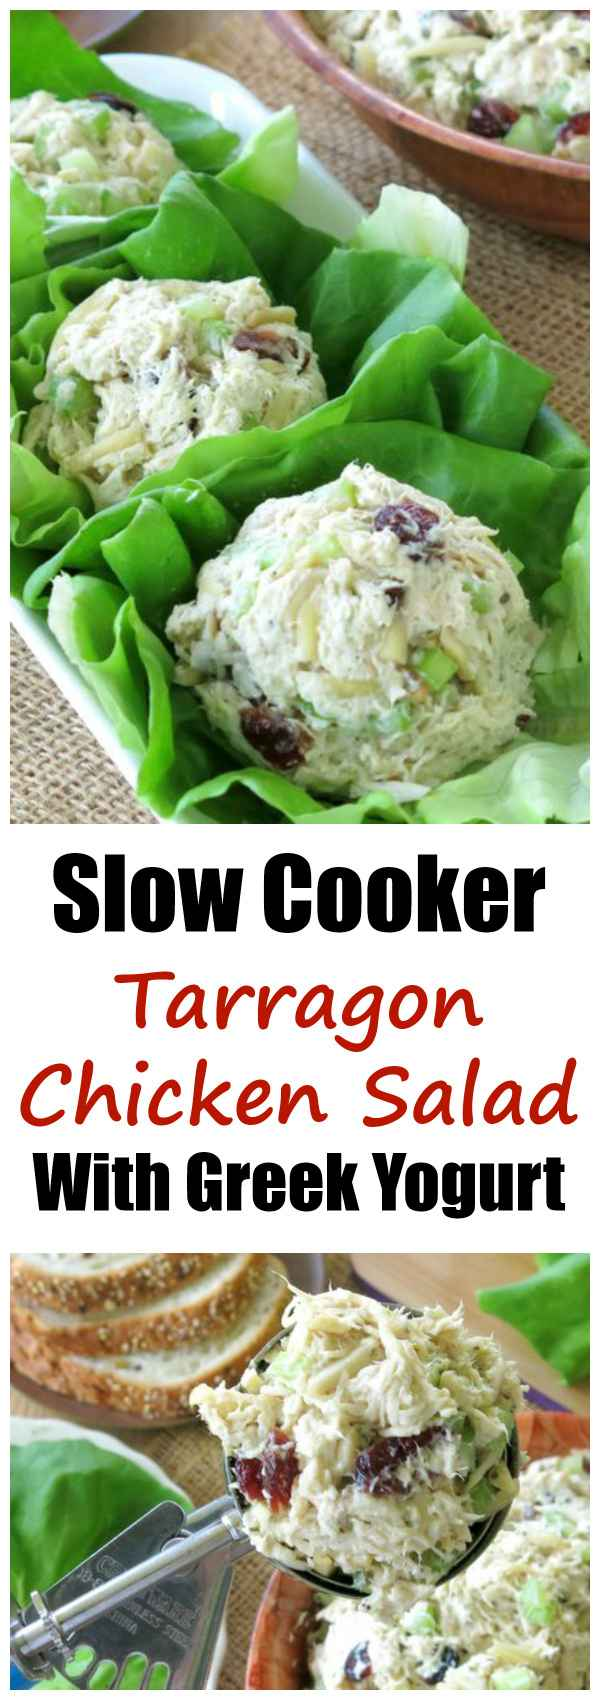 Slow Cooker Tarragon Chicken Salad Recipe with Greek Yogurt is low-carb and gluten-free. We love it for entertaining and for lunches!